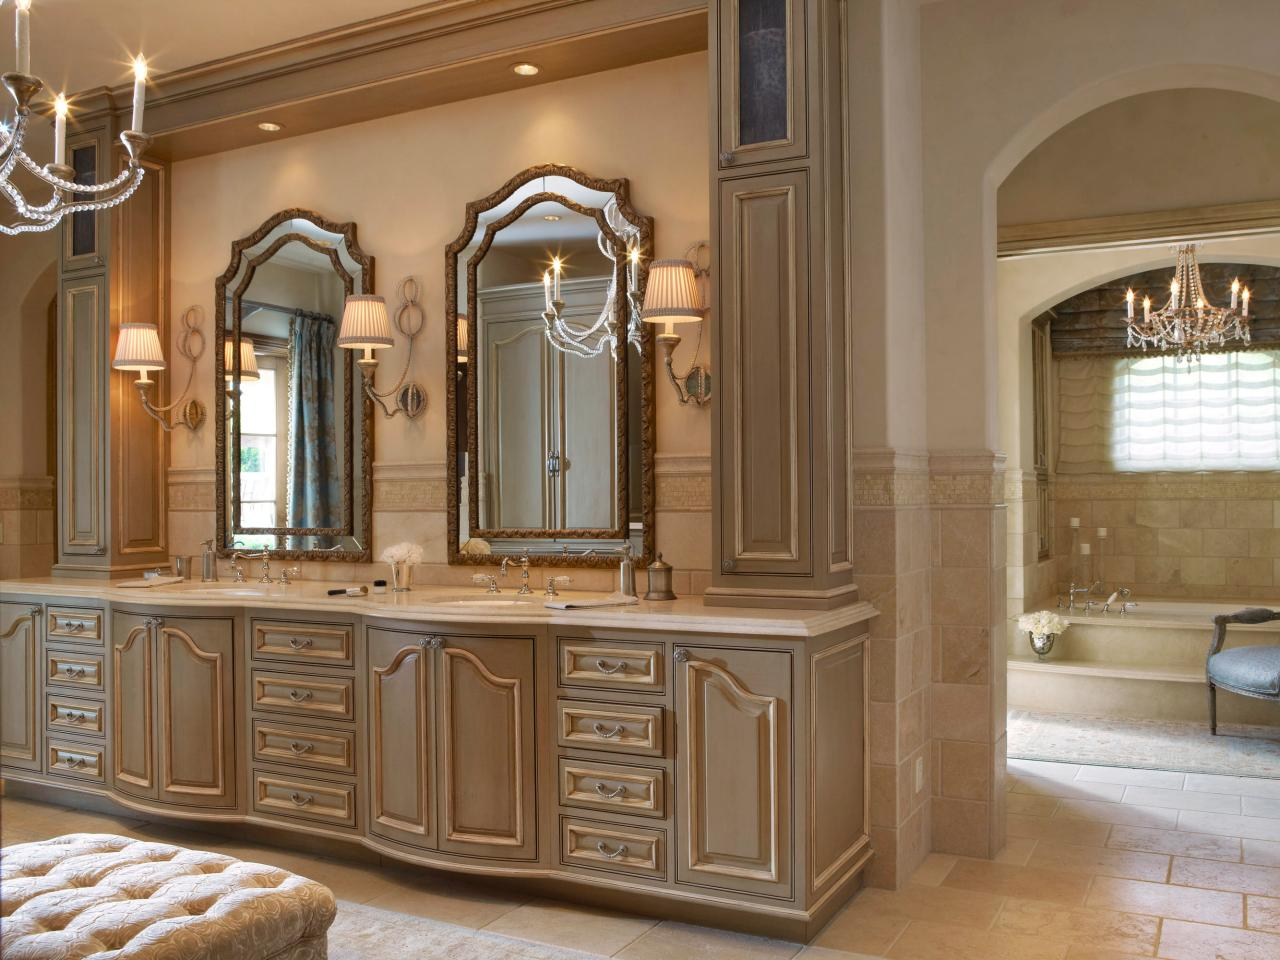 Dreamy bathroom vanities and countertops bathroom ideas for Bathroom ideas luxury